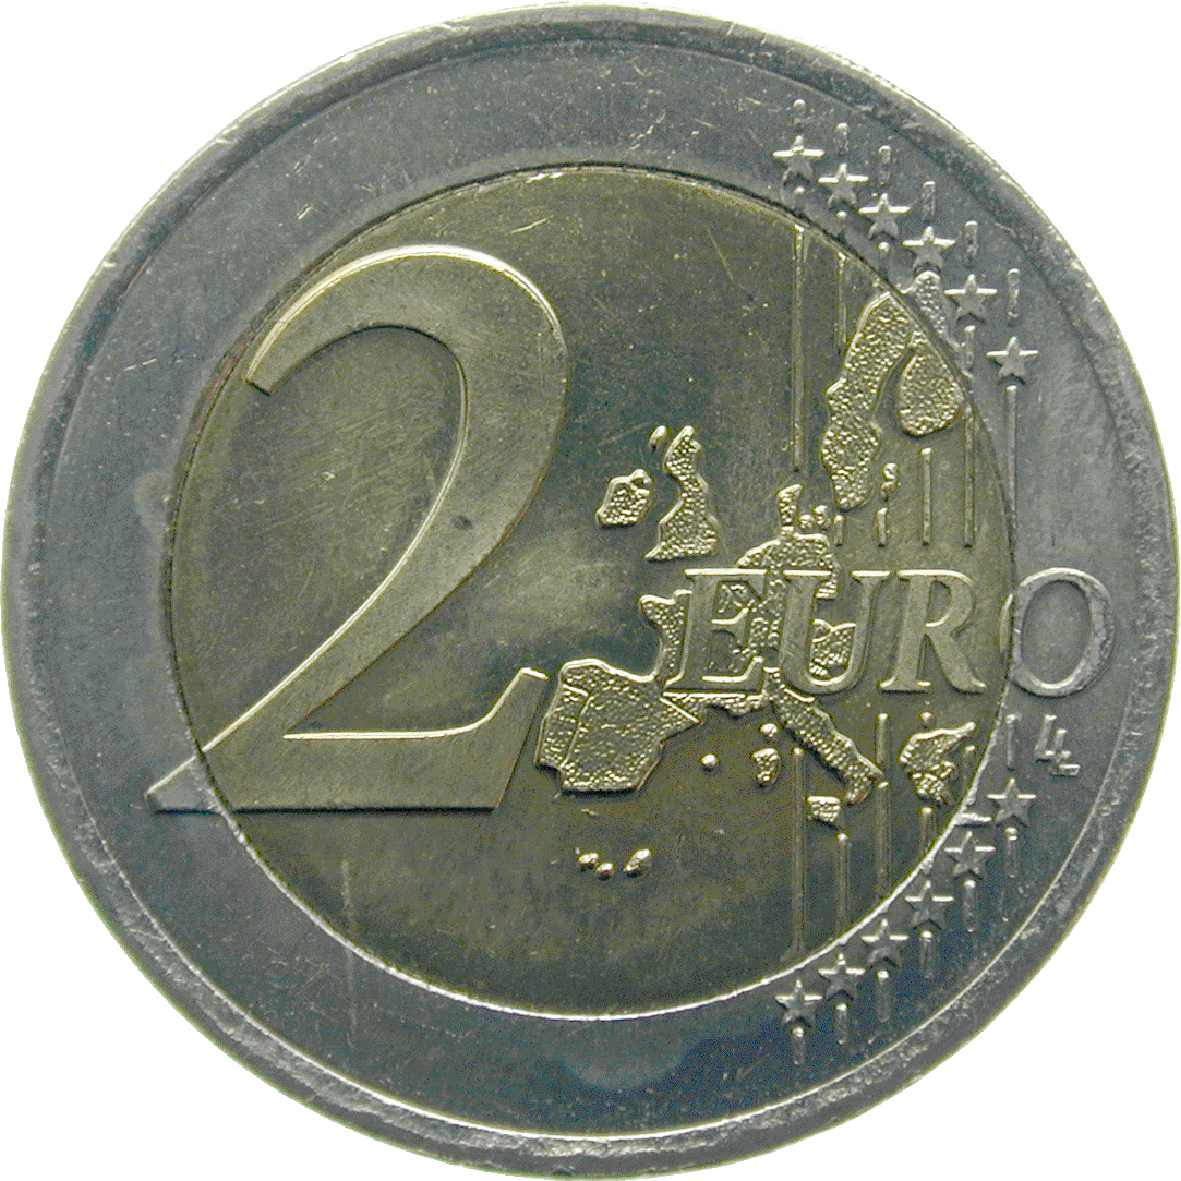 Republic of Austria, 2 Euro 2002 (obverse)